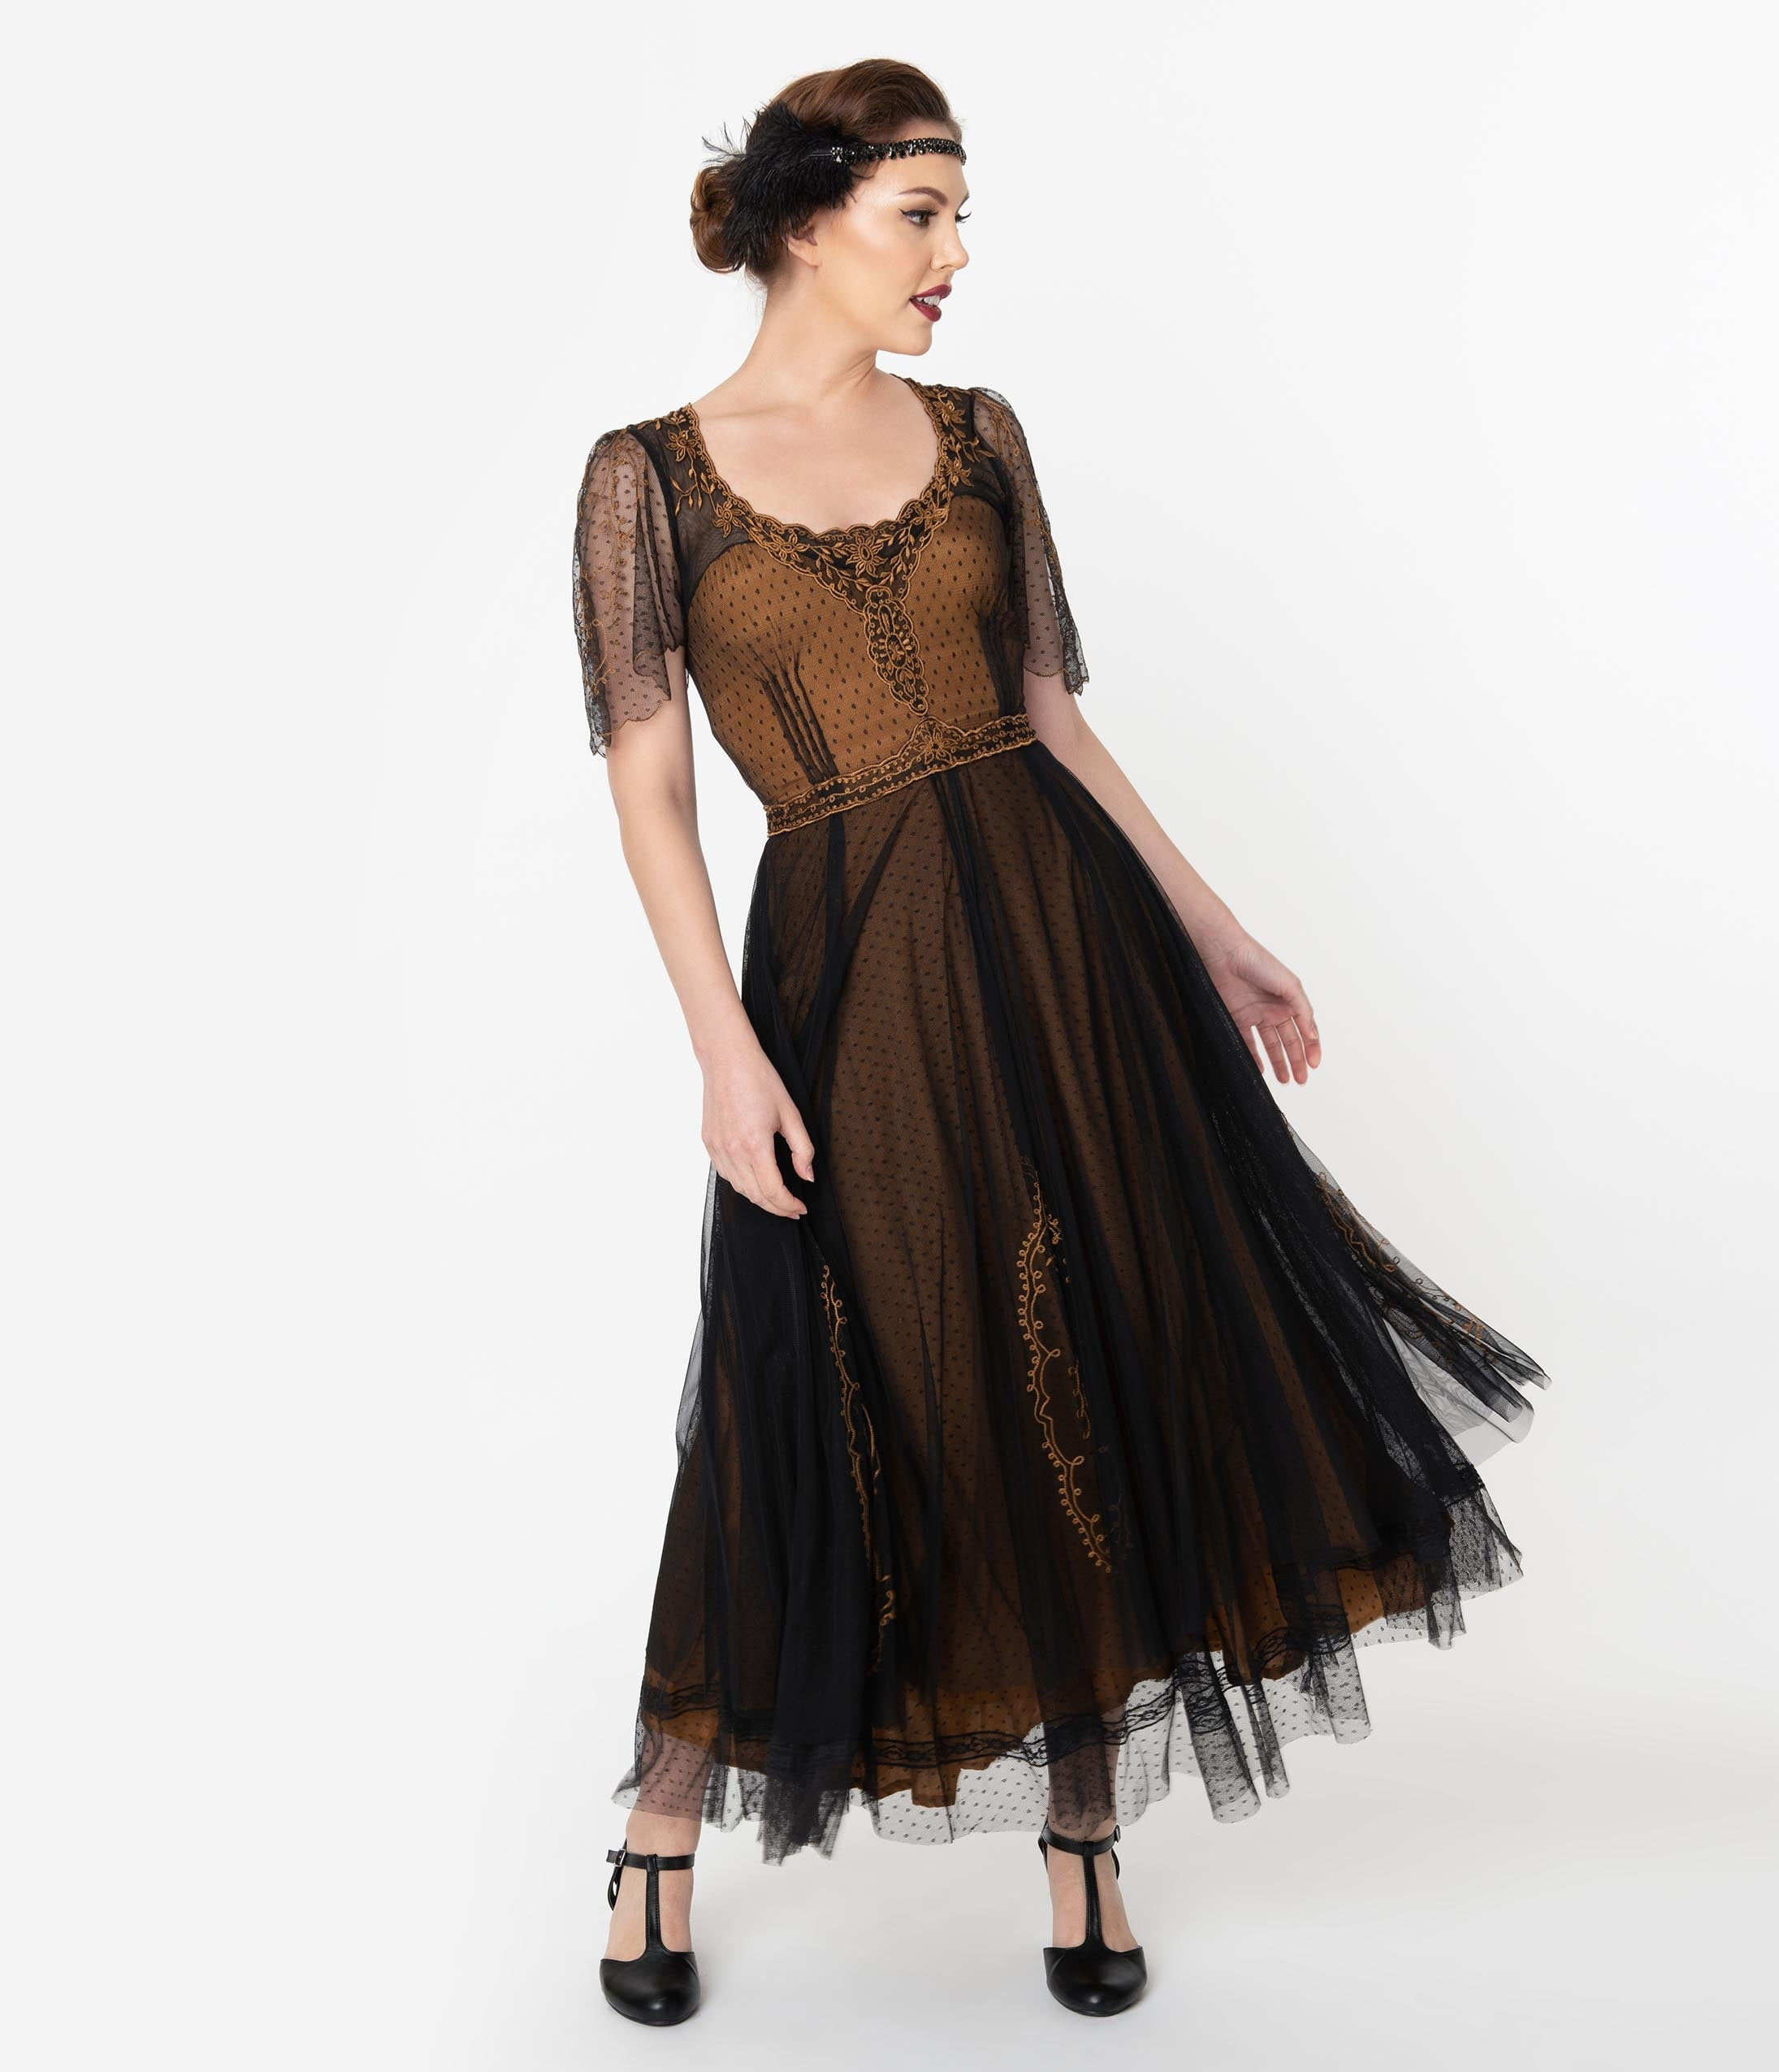 Flapper Dresses & Quality Flapper Costumes Vintage Style Black  Gold Embroidered Mesh Edwardian Gown $289.00 AT vintagedancer.com